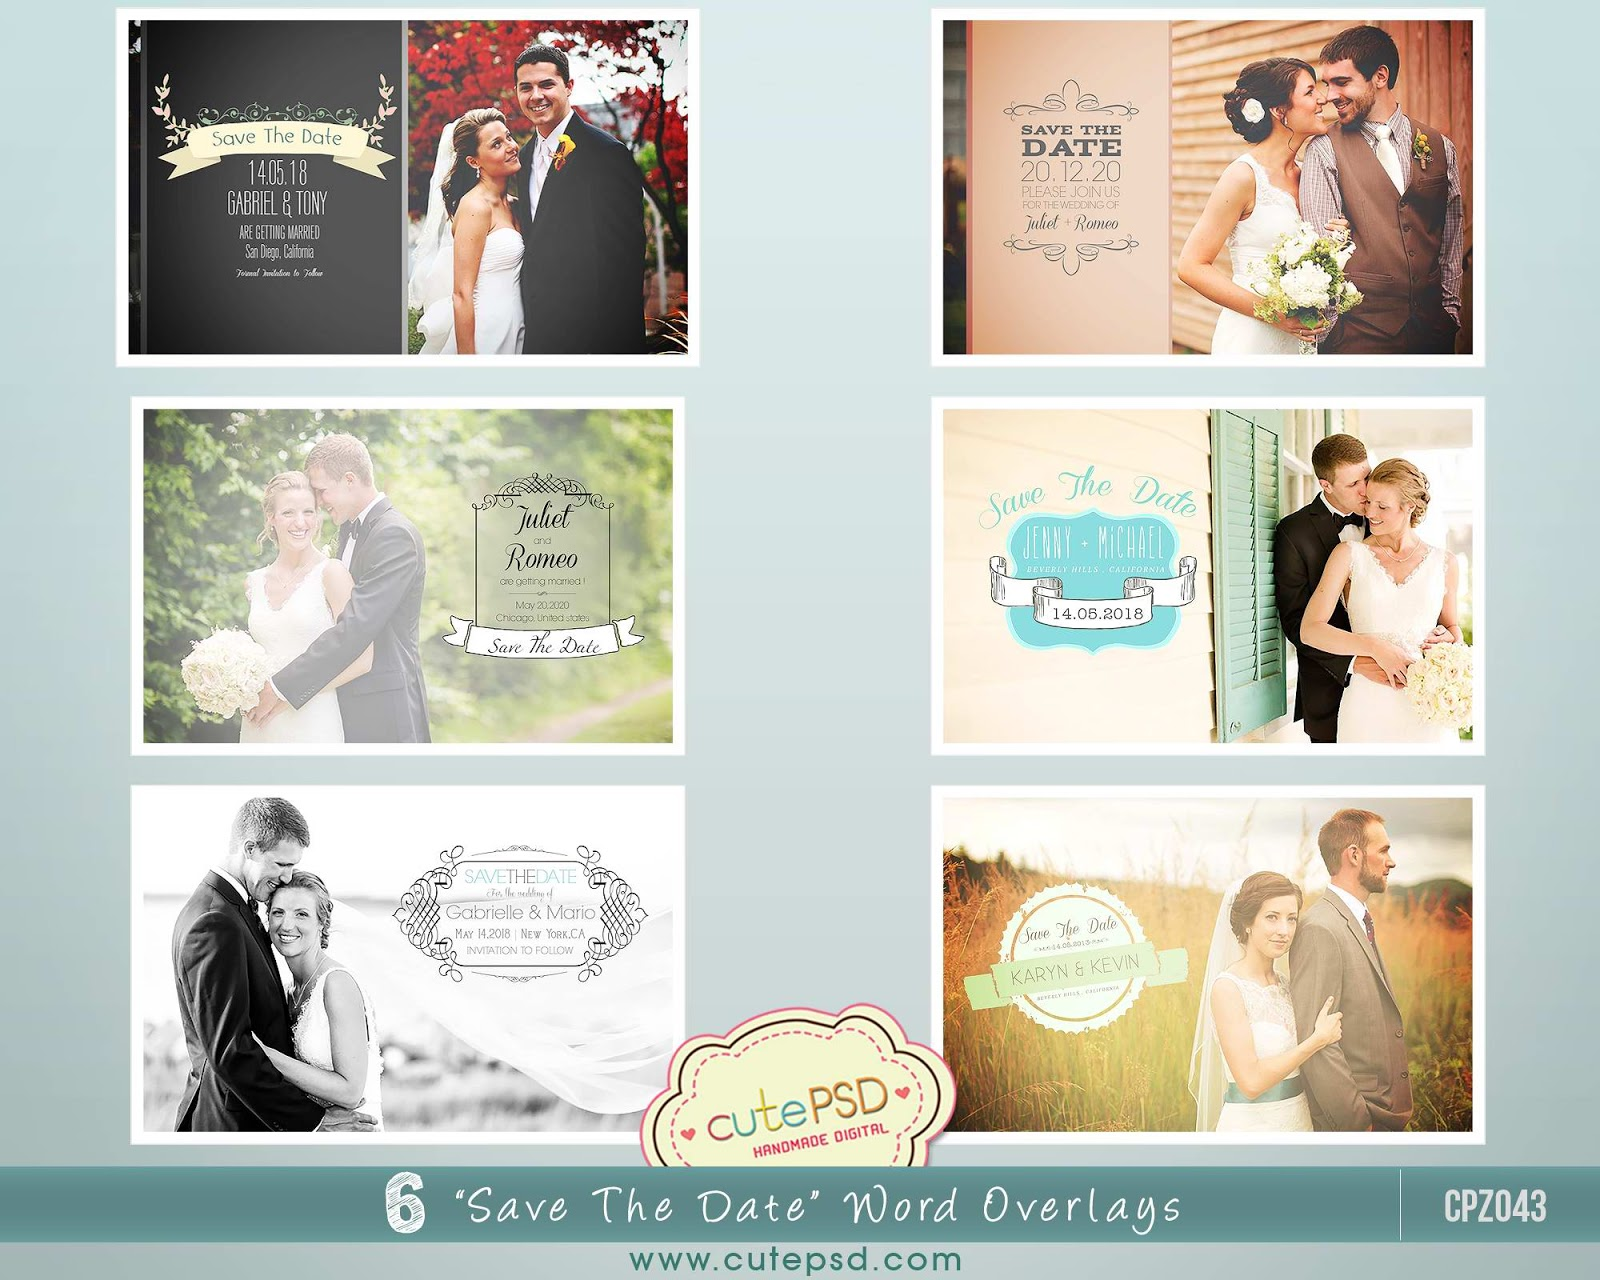 cute psd studio save the date photo overlays photoshop template